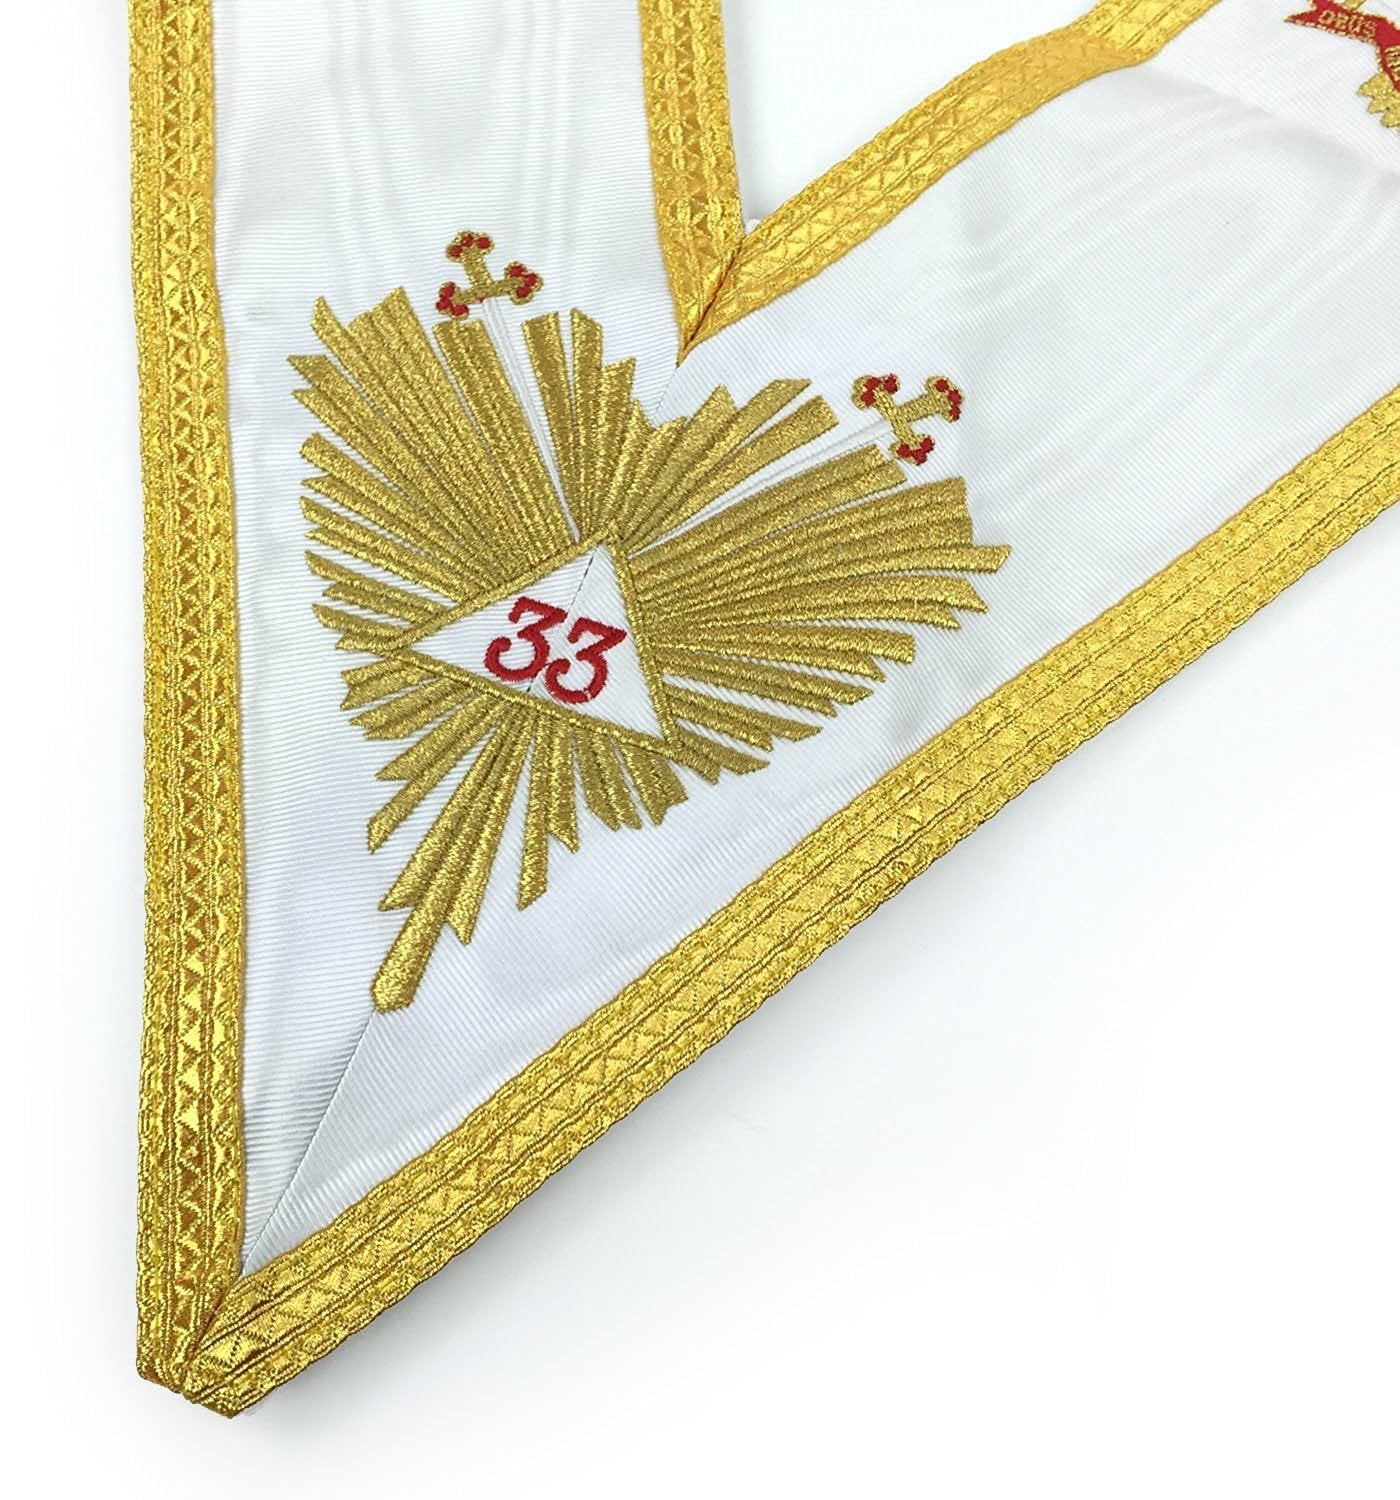 Masonic Rose Croix 33rd Degree Silk Apron, Gauntlets and Collar Set - All Countries Flags - Bricks Masons